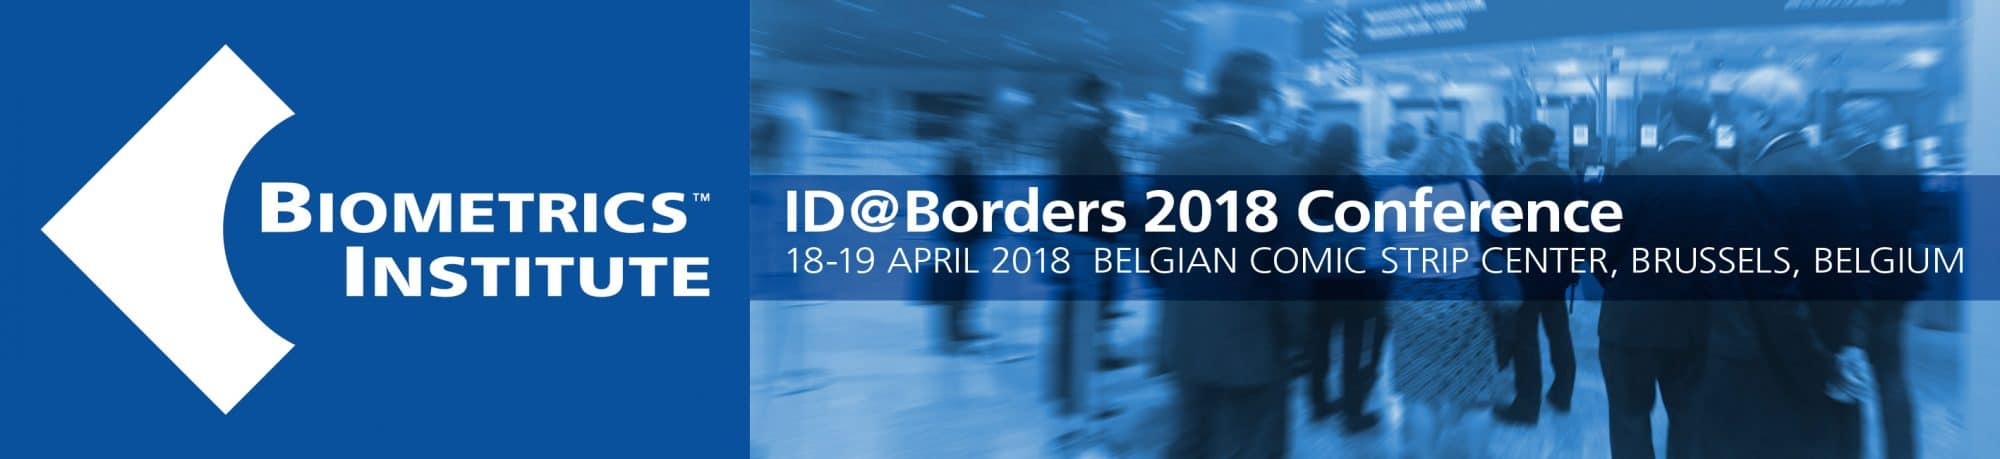 Biometrics Institute ID at the Borders Conference